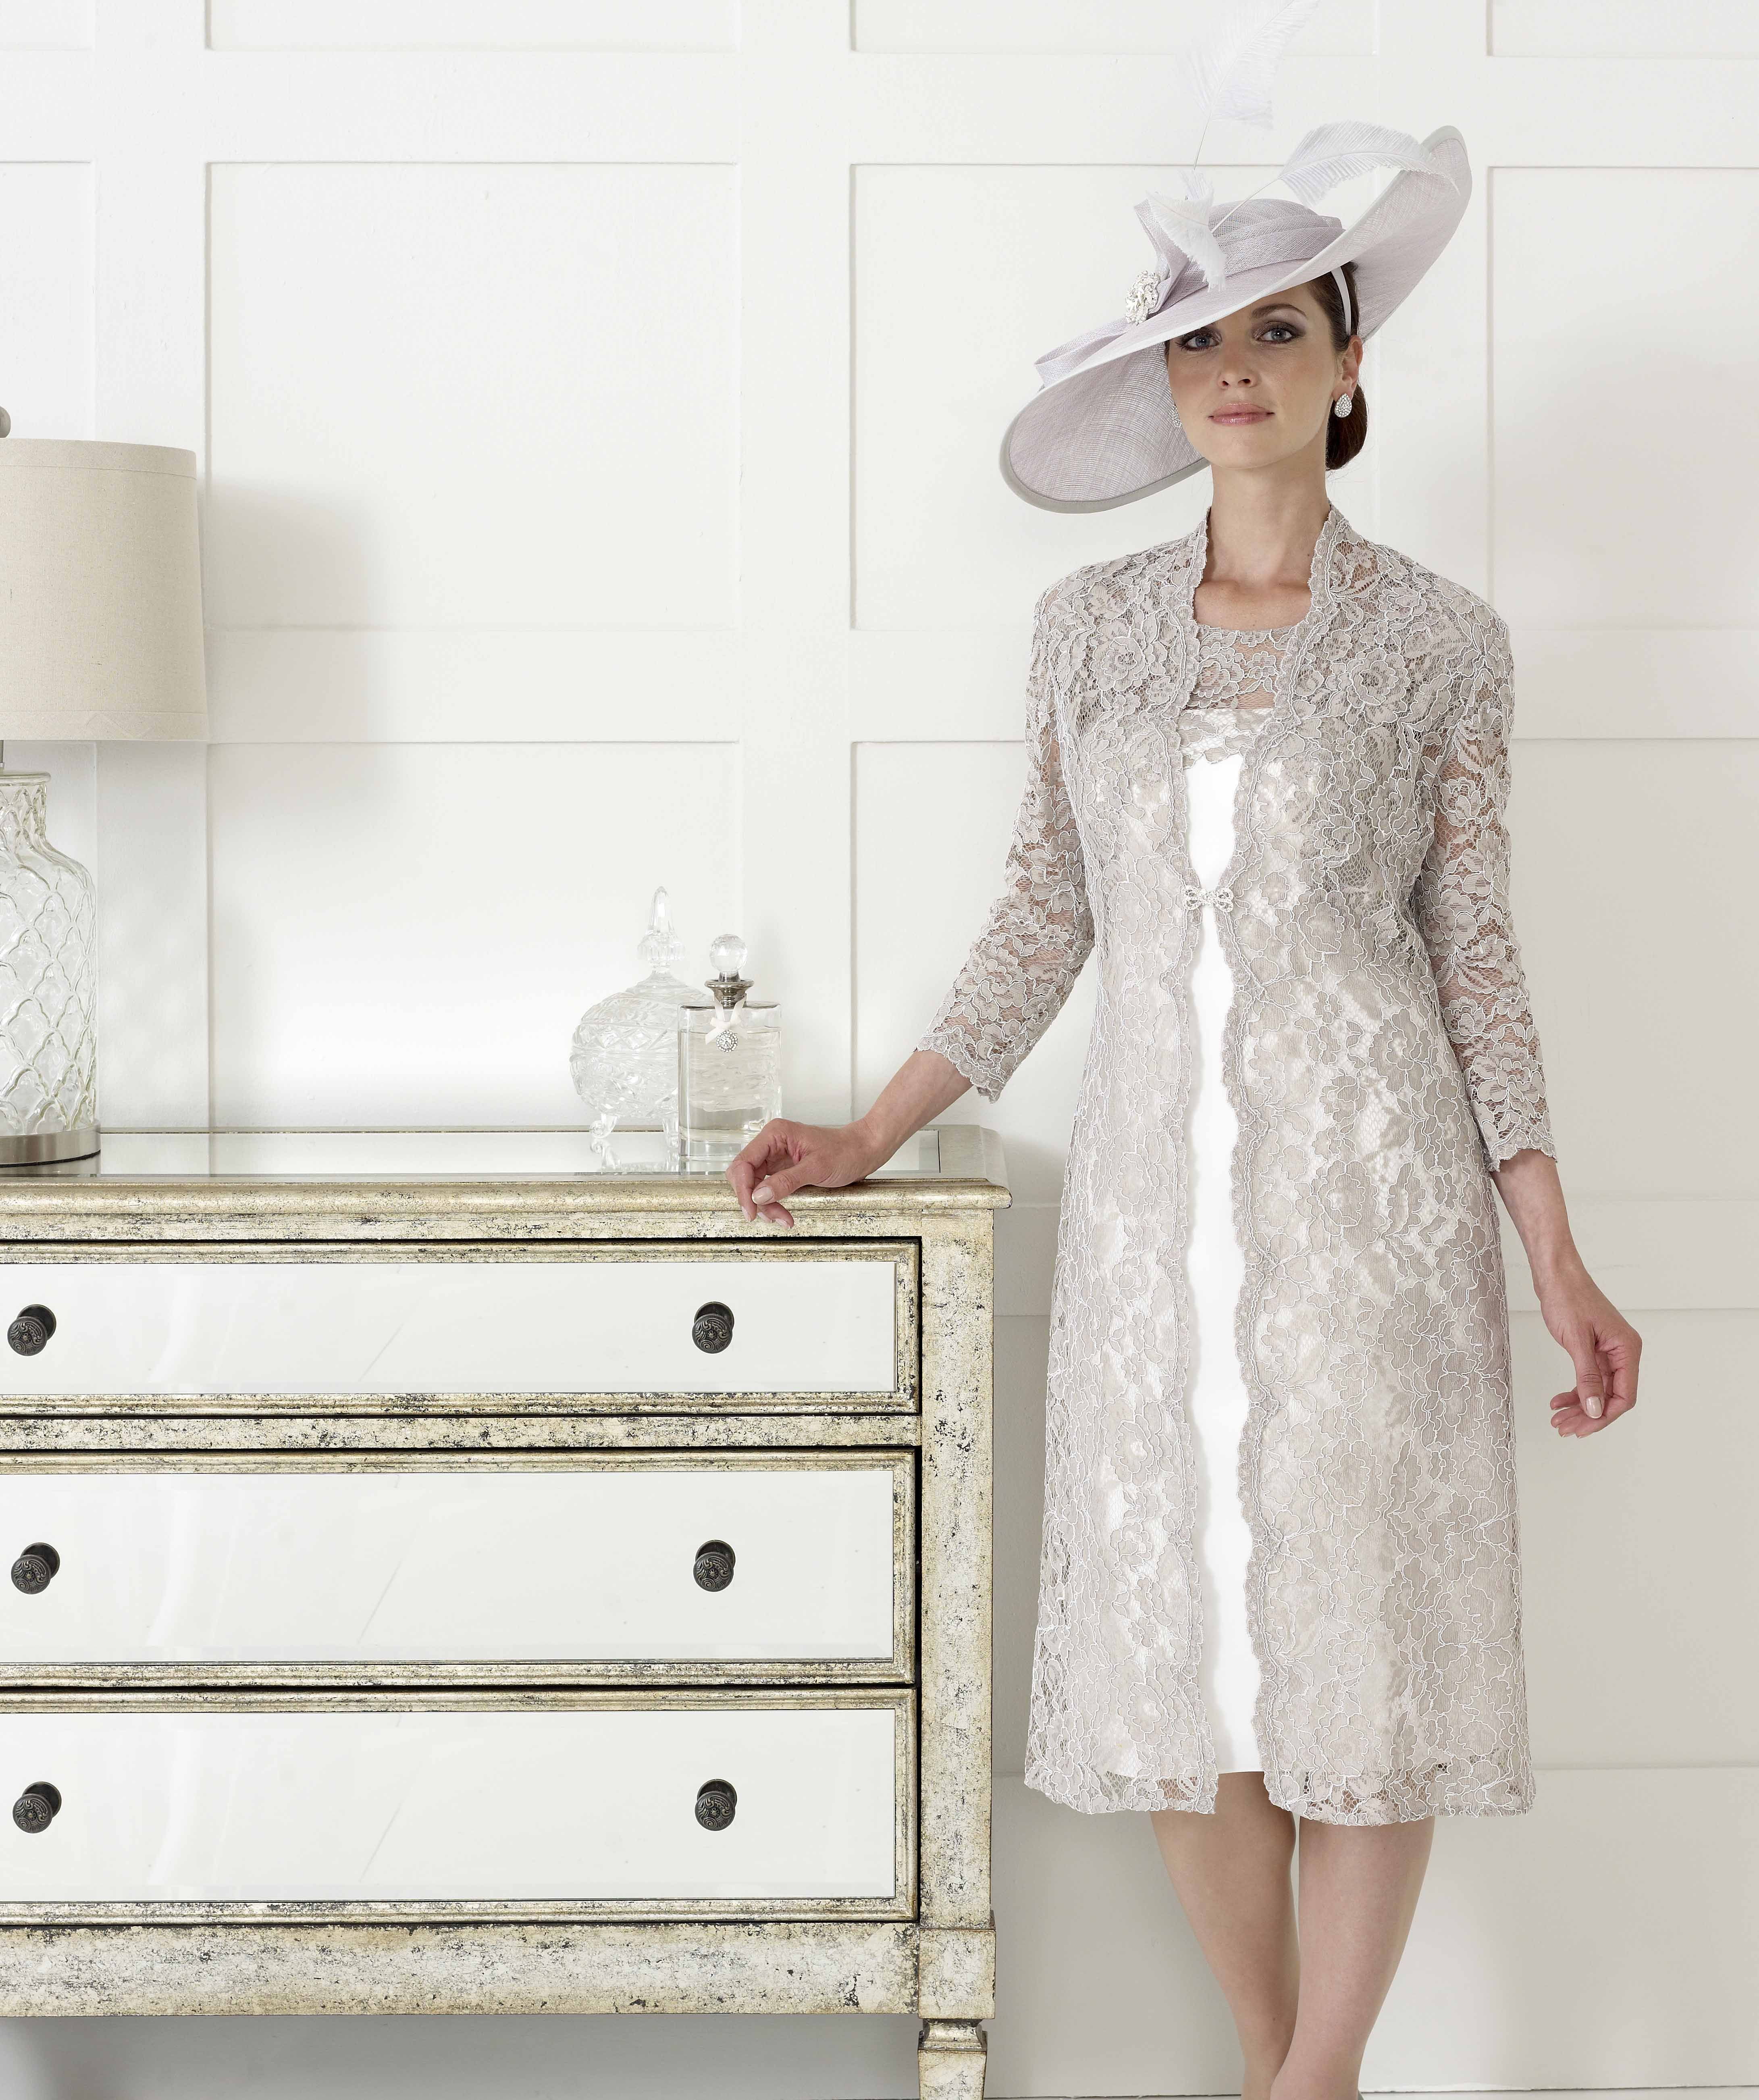 Gorgeous lace dress and coat by Dress Code by Veromia